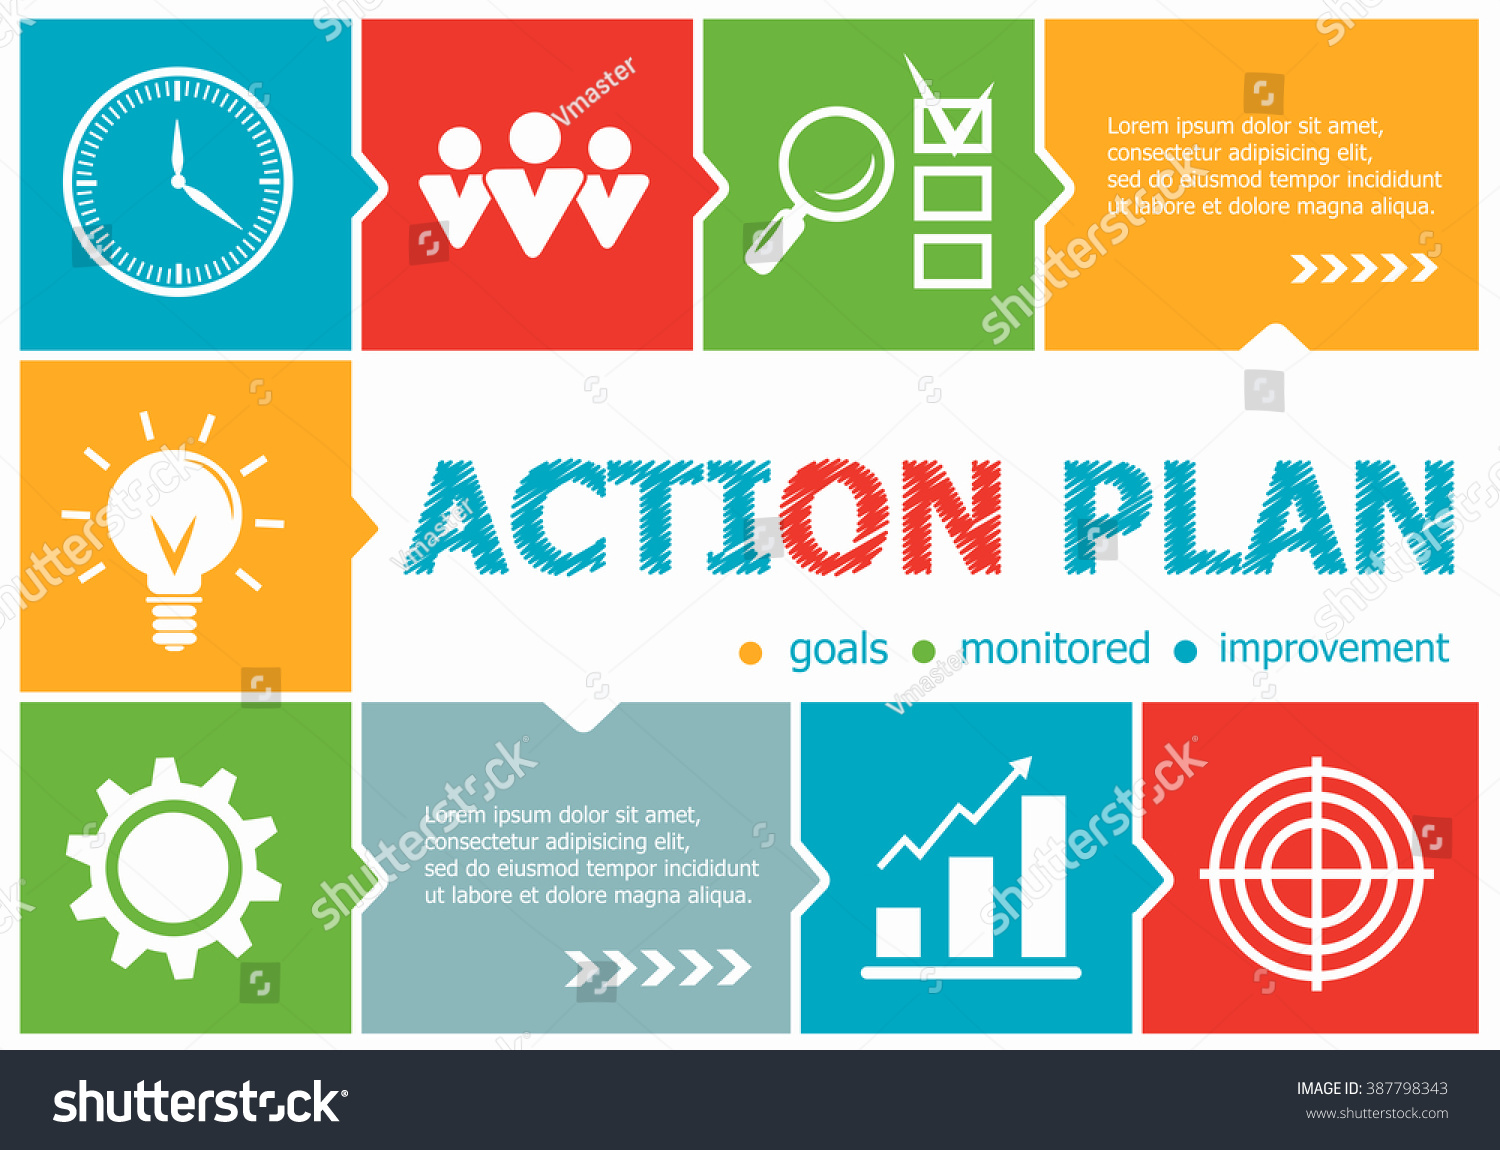 Action Plan Design Illustration Concepts Business Vector – Action Plan